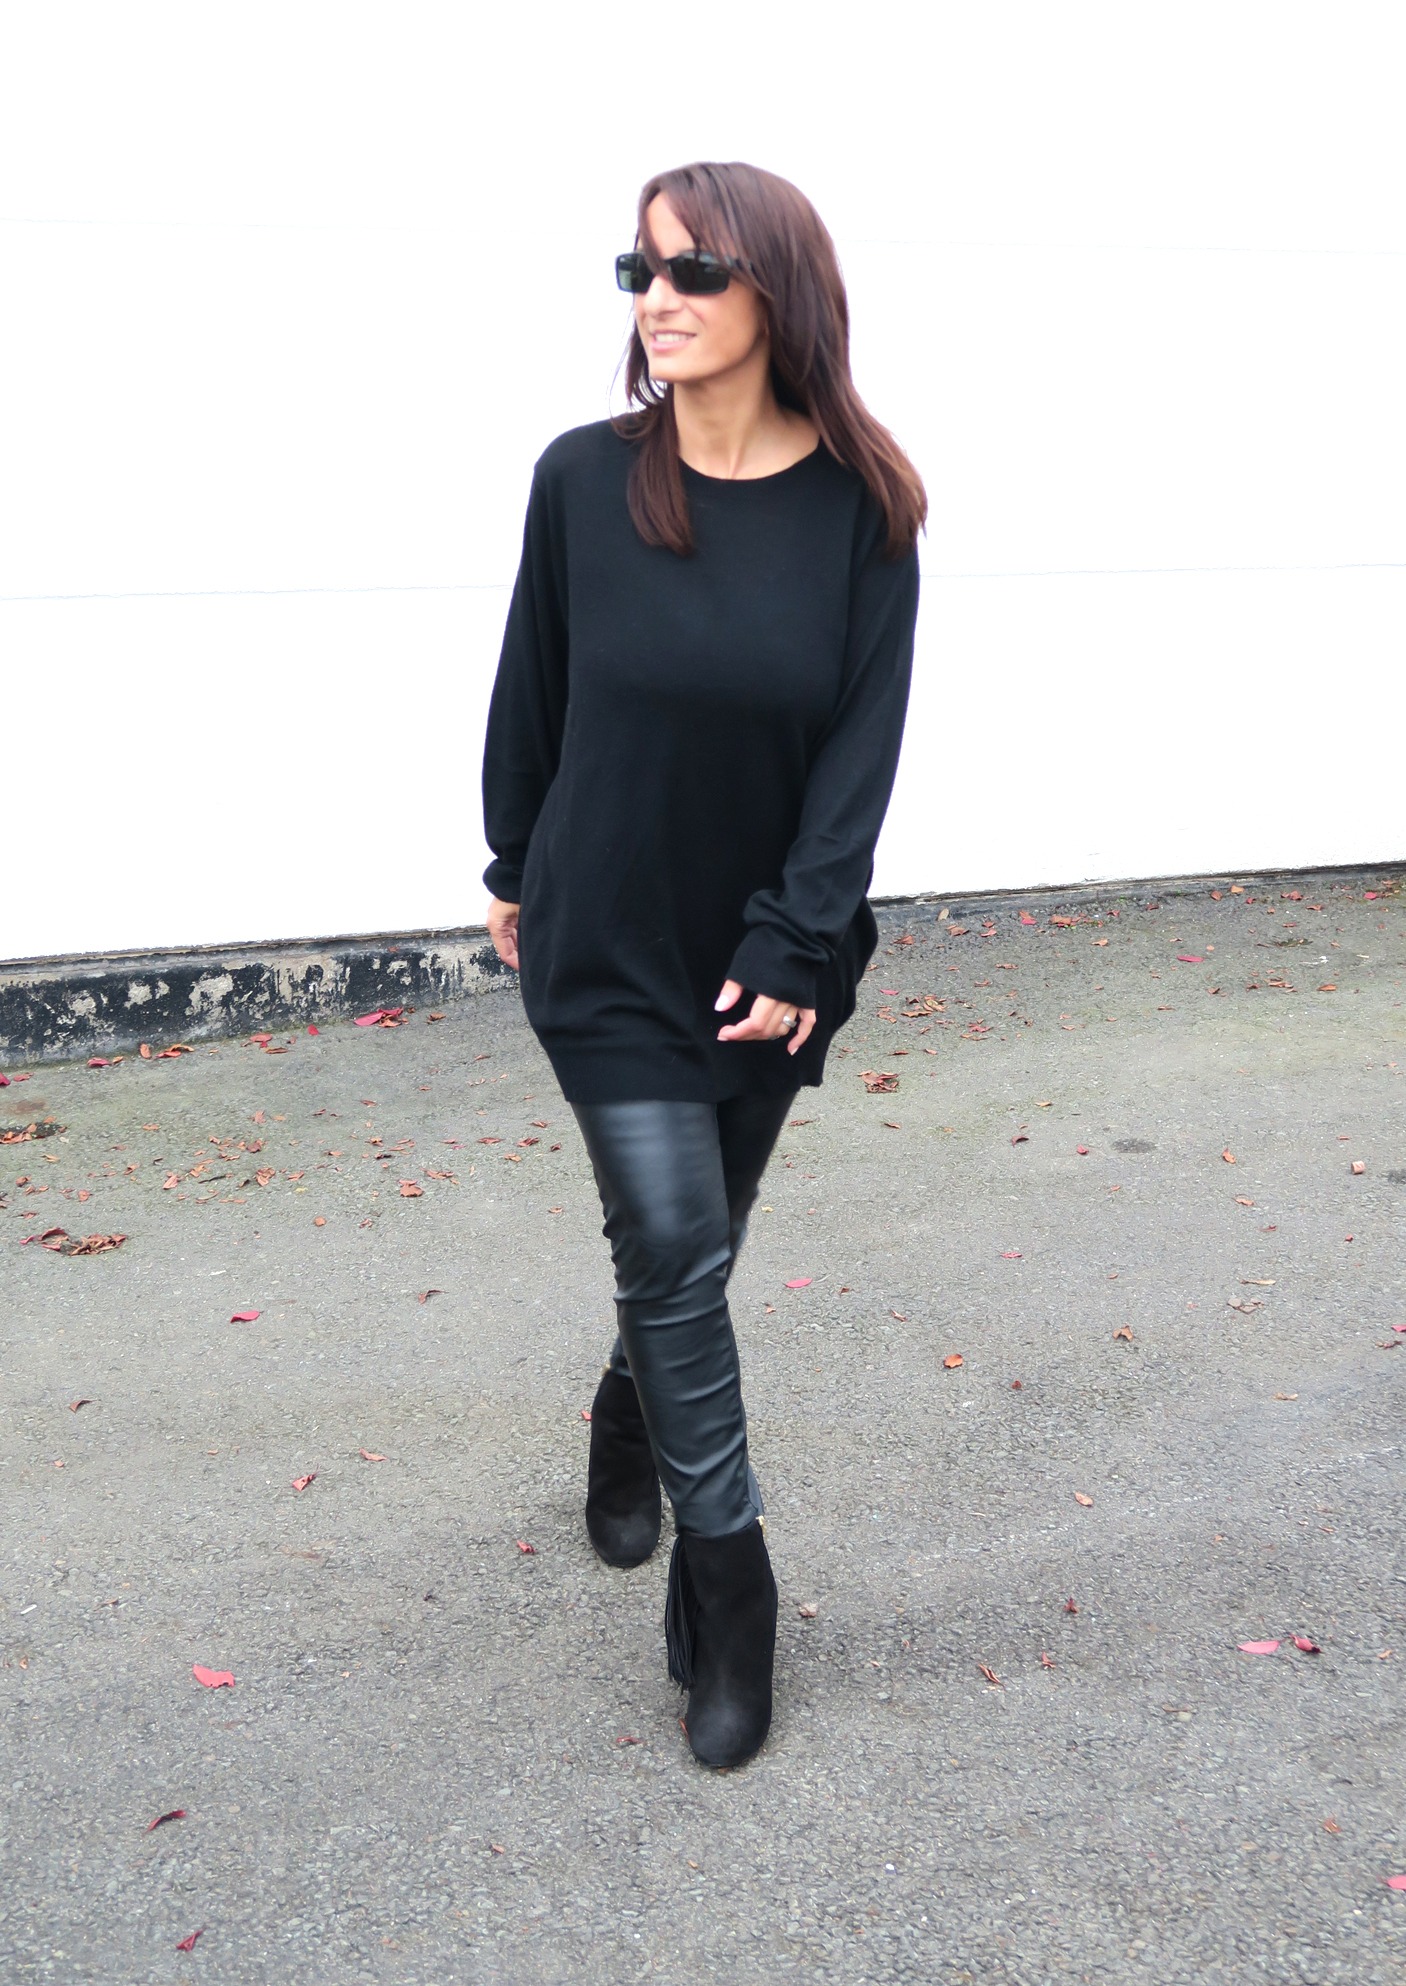 brands4friends-buffalo-boots-fringe-fashionblogger-modeblogger-fashion-style-trend-black-outfit-1